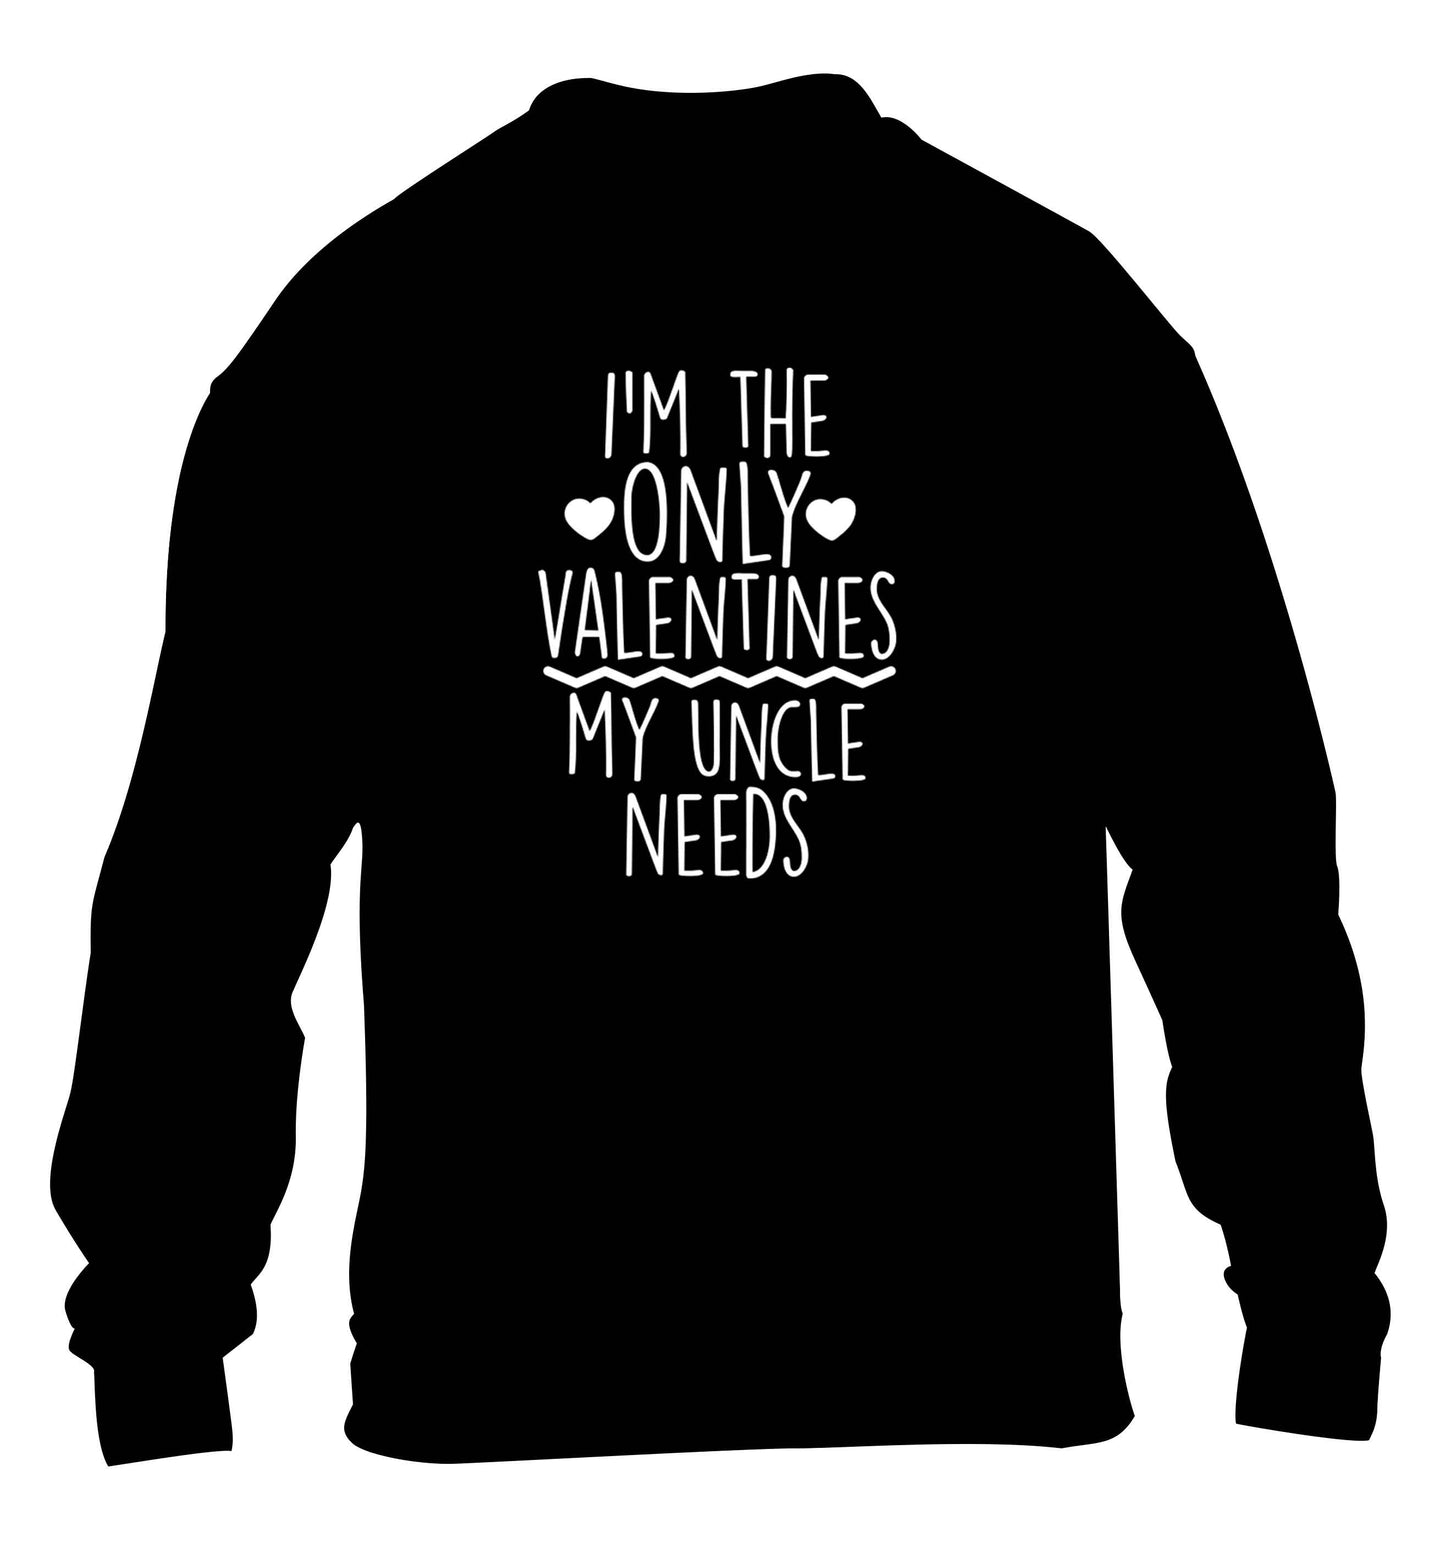 I'm the only valentines my uncle needs children's black sweater 12-13 Years